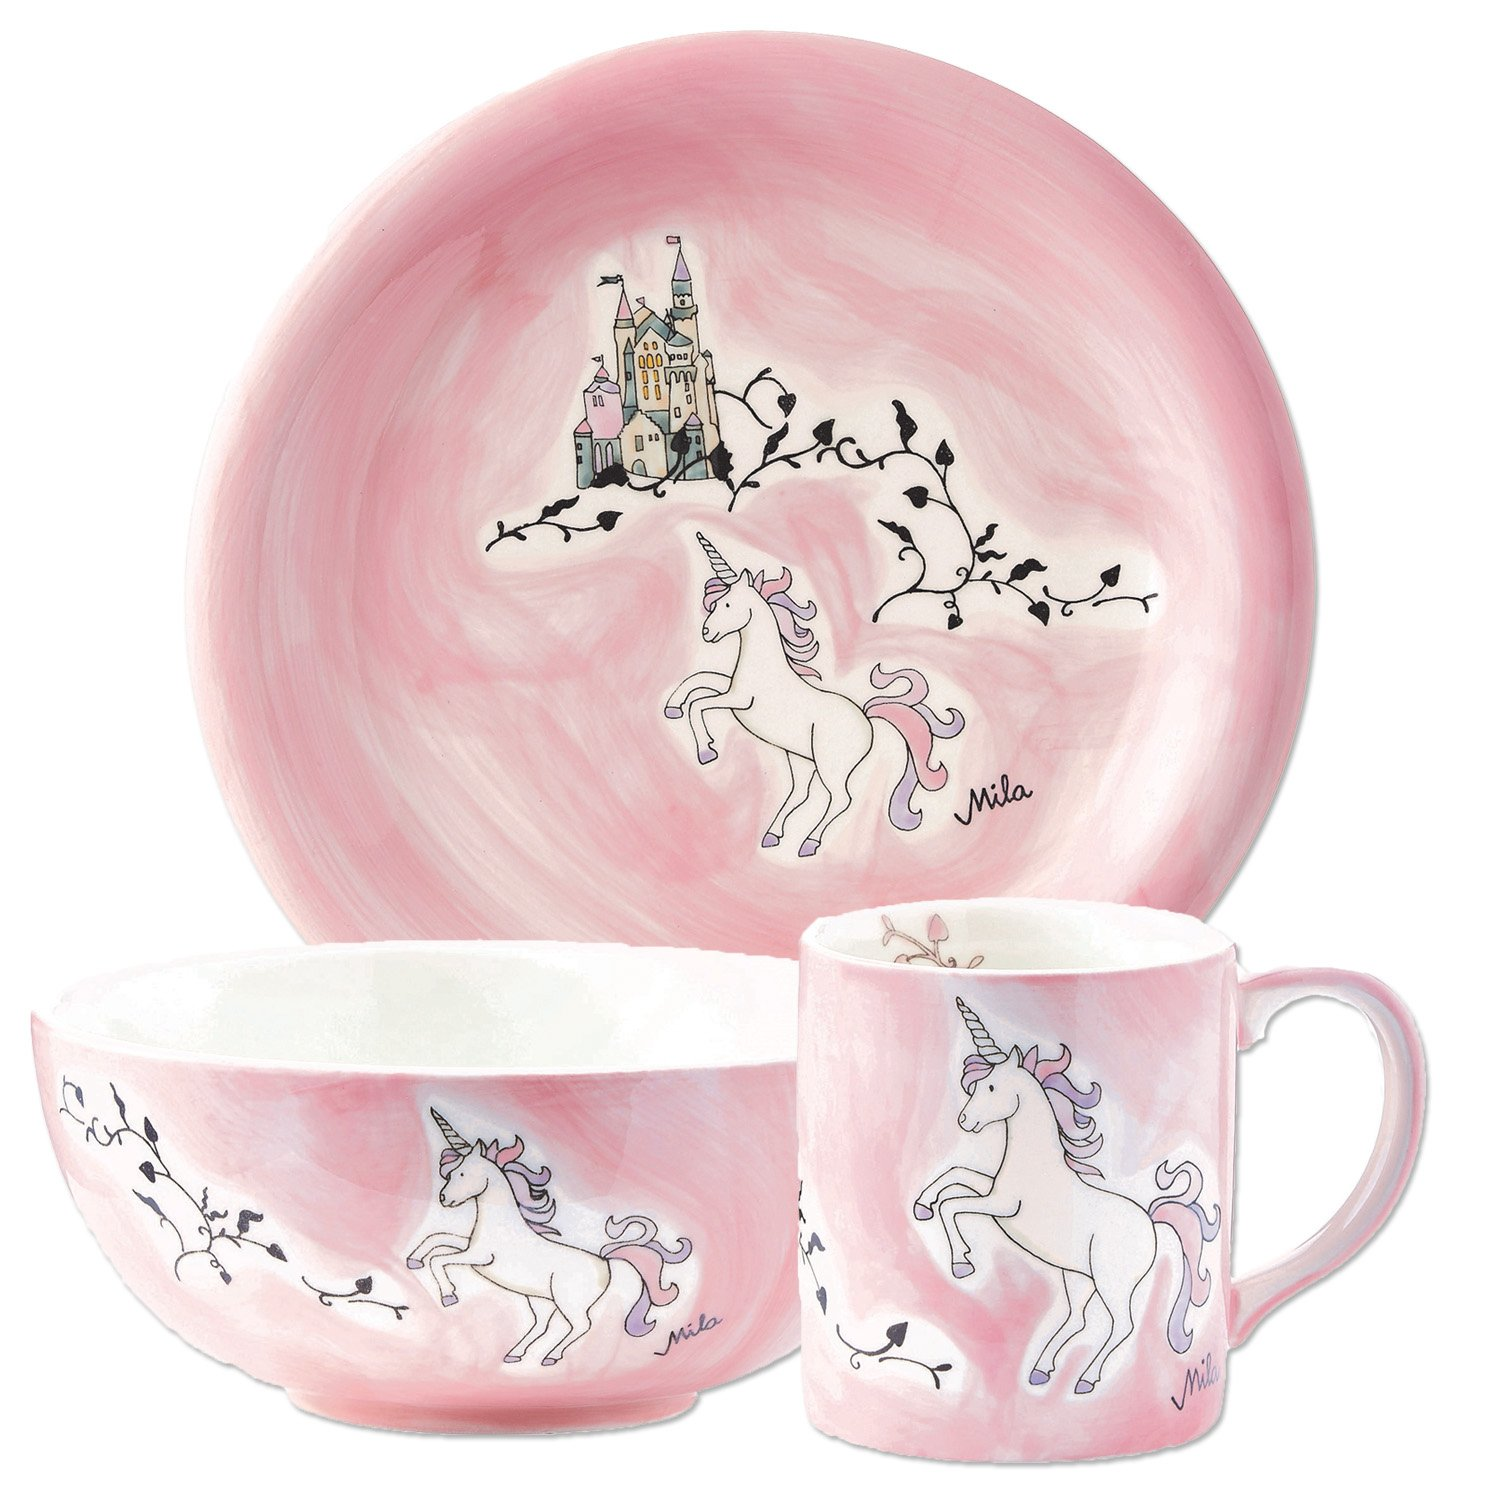 Children's Handpainted Unicorn Ceramic Dinner Set | Kids Unicorn Tableware | Unicorn Gifts Mila